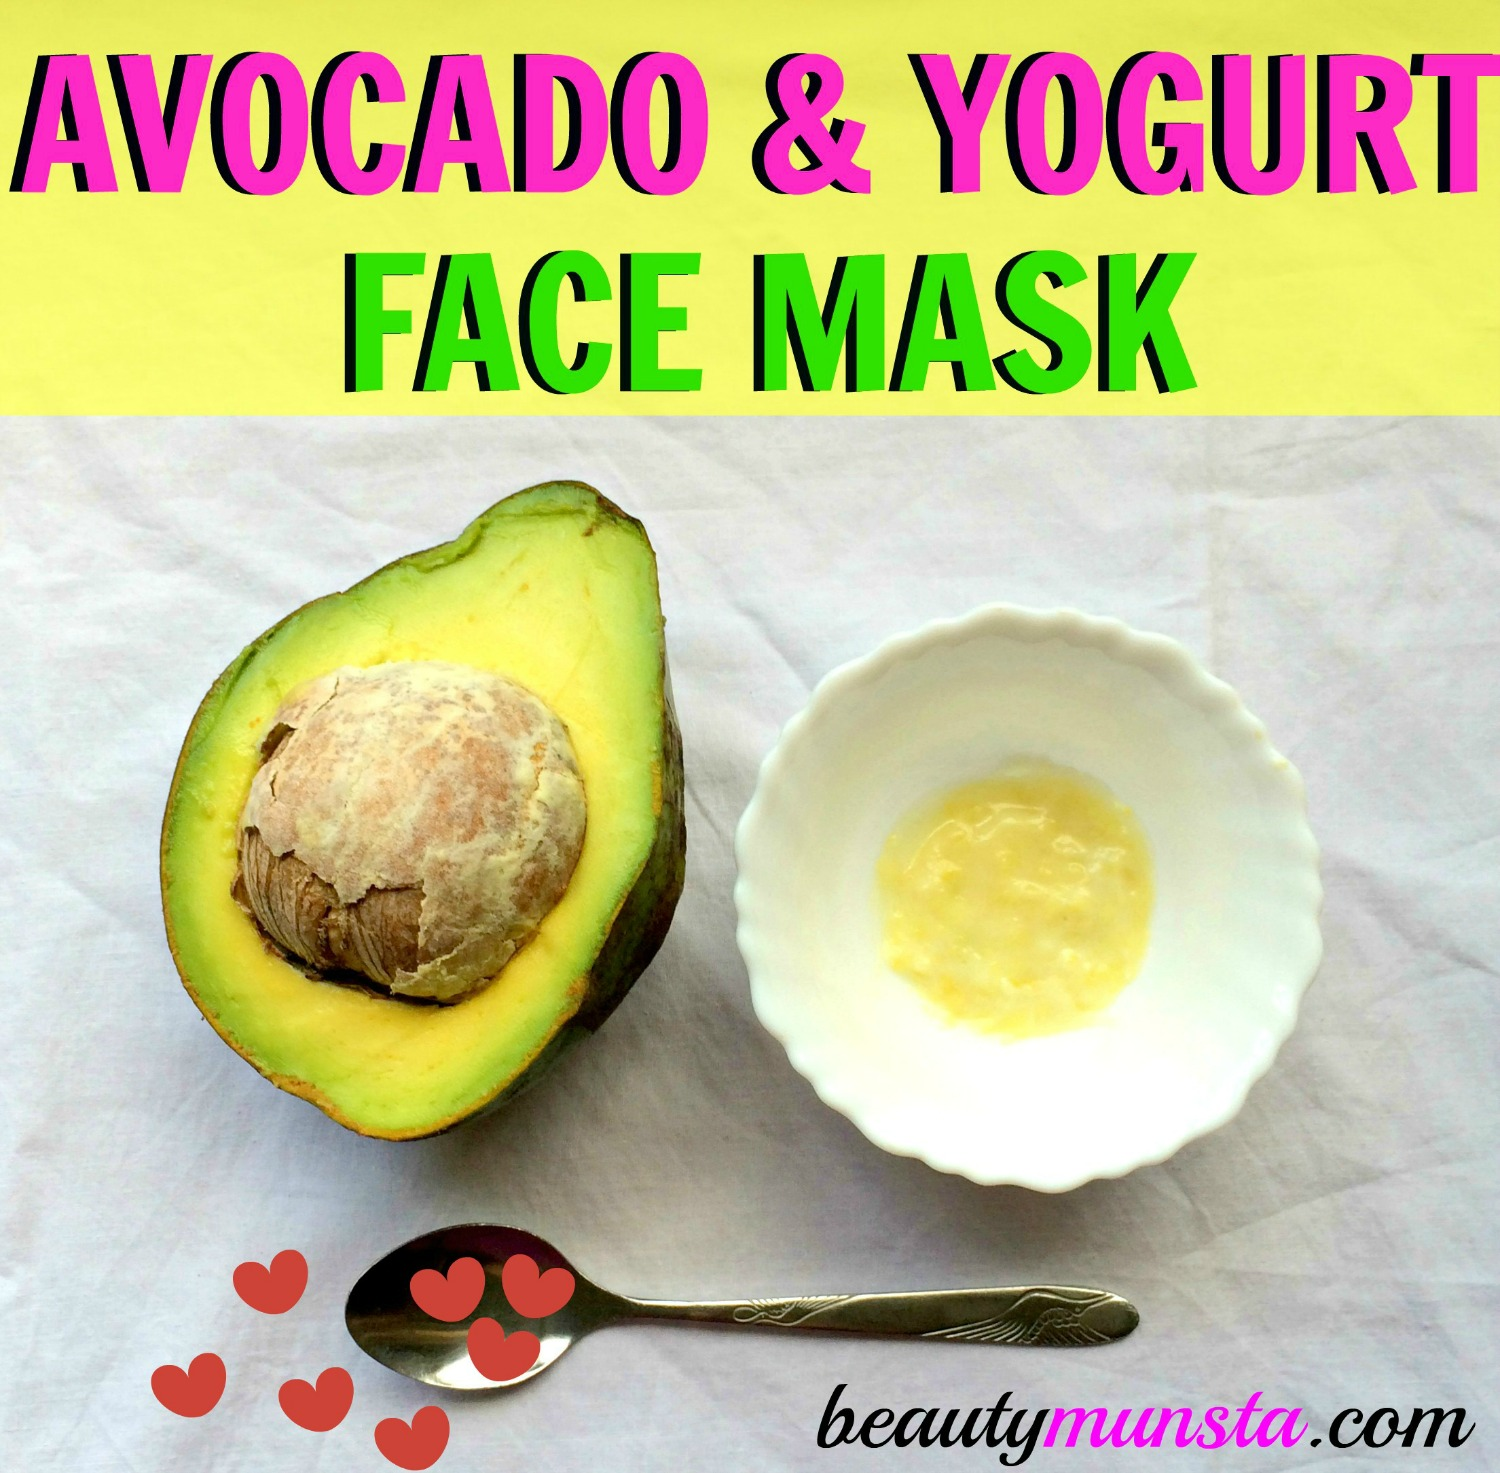 Are certainly recipe for facial masks for the